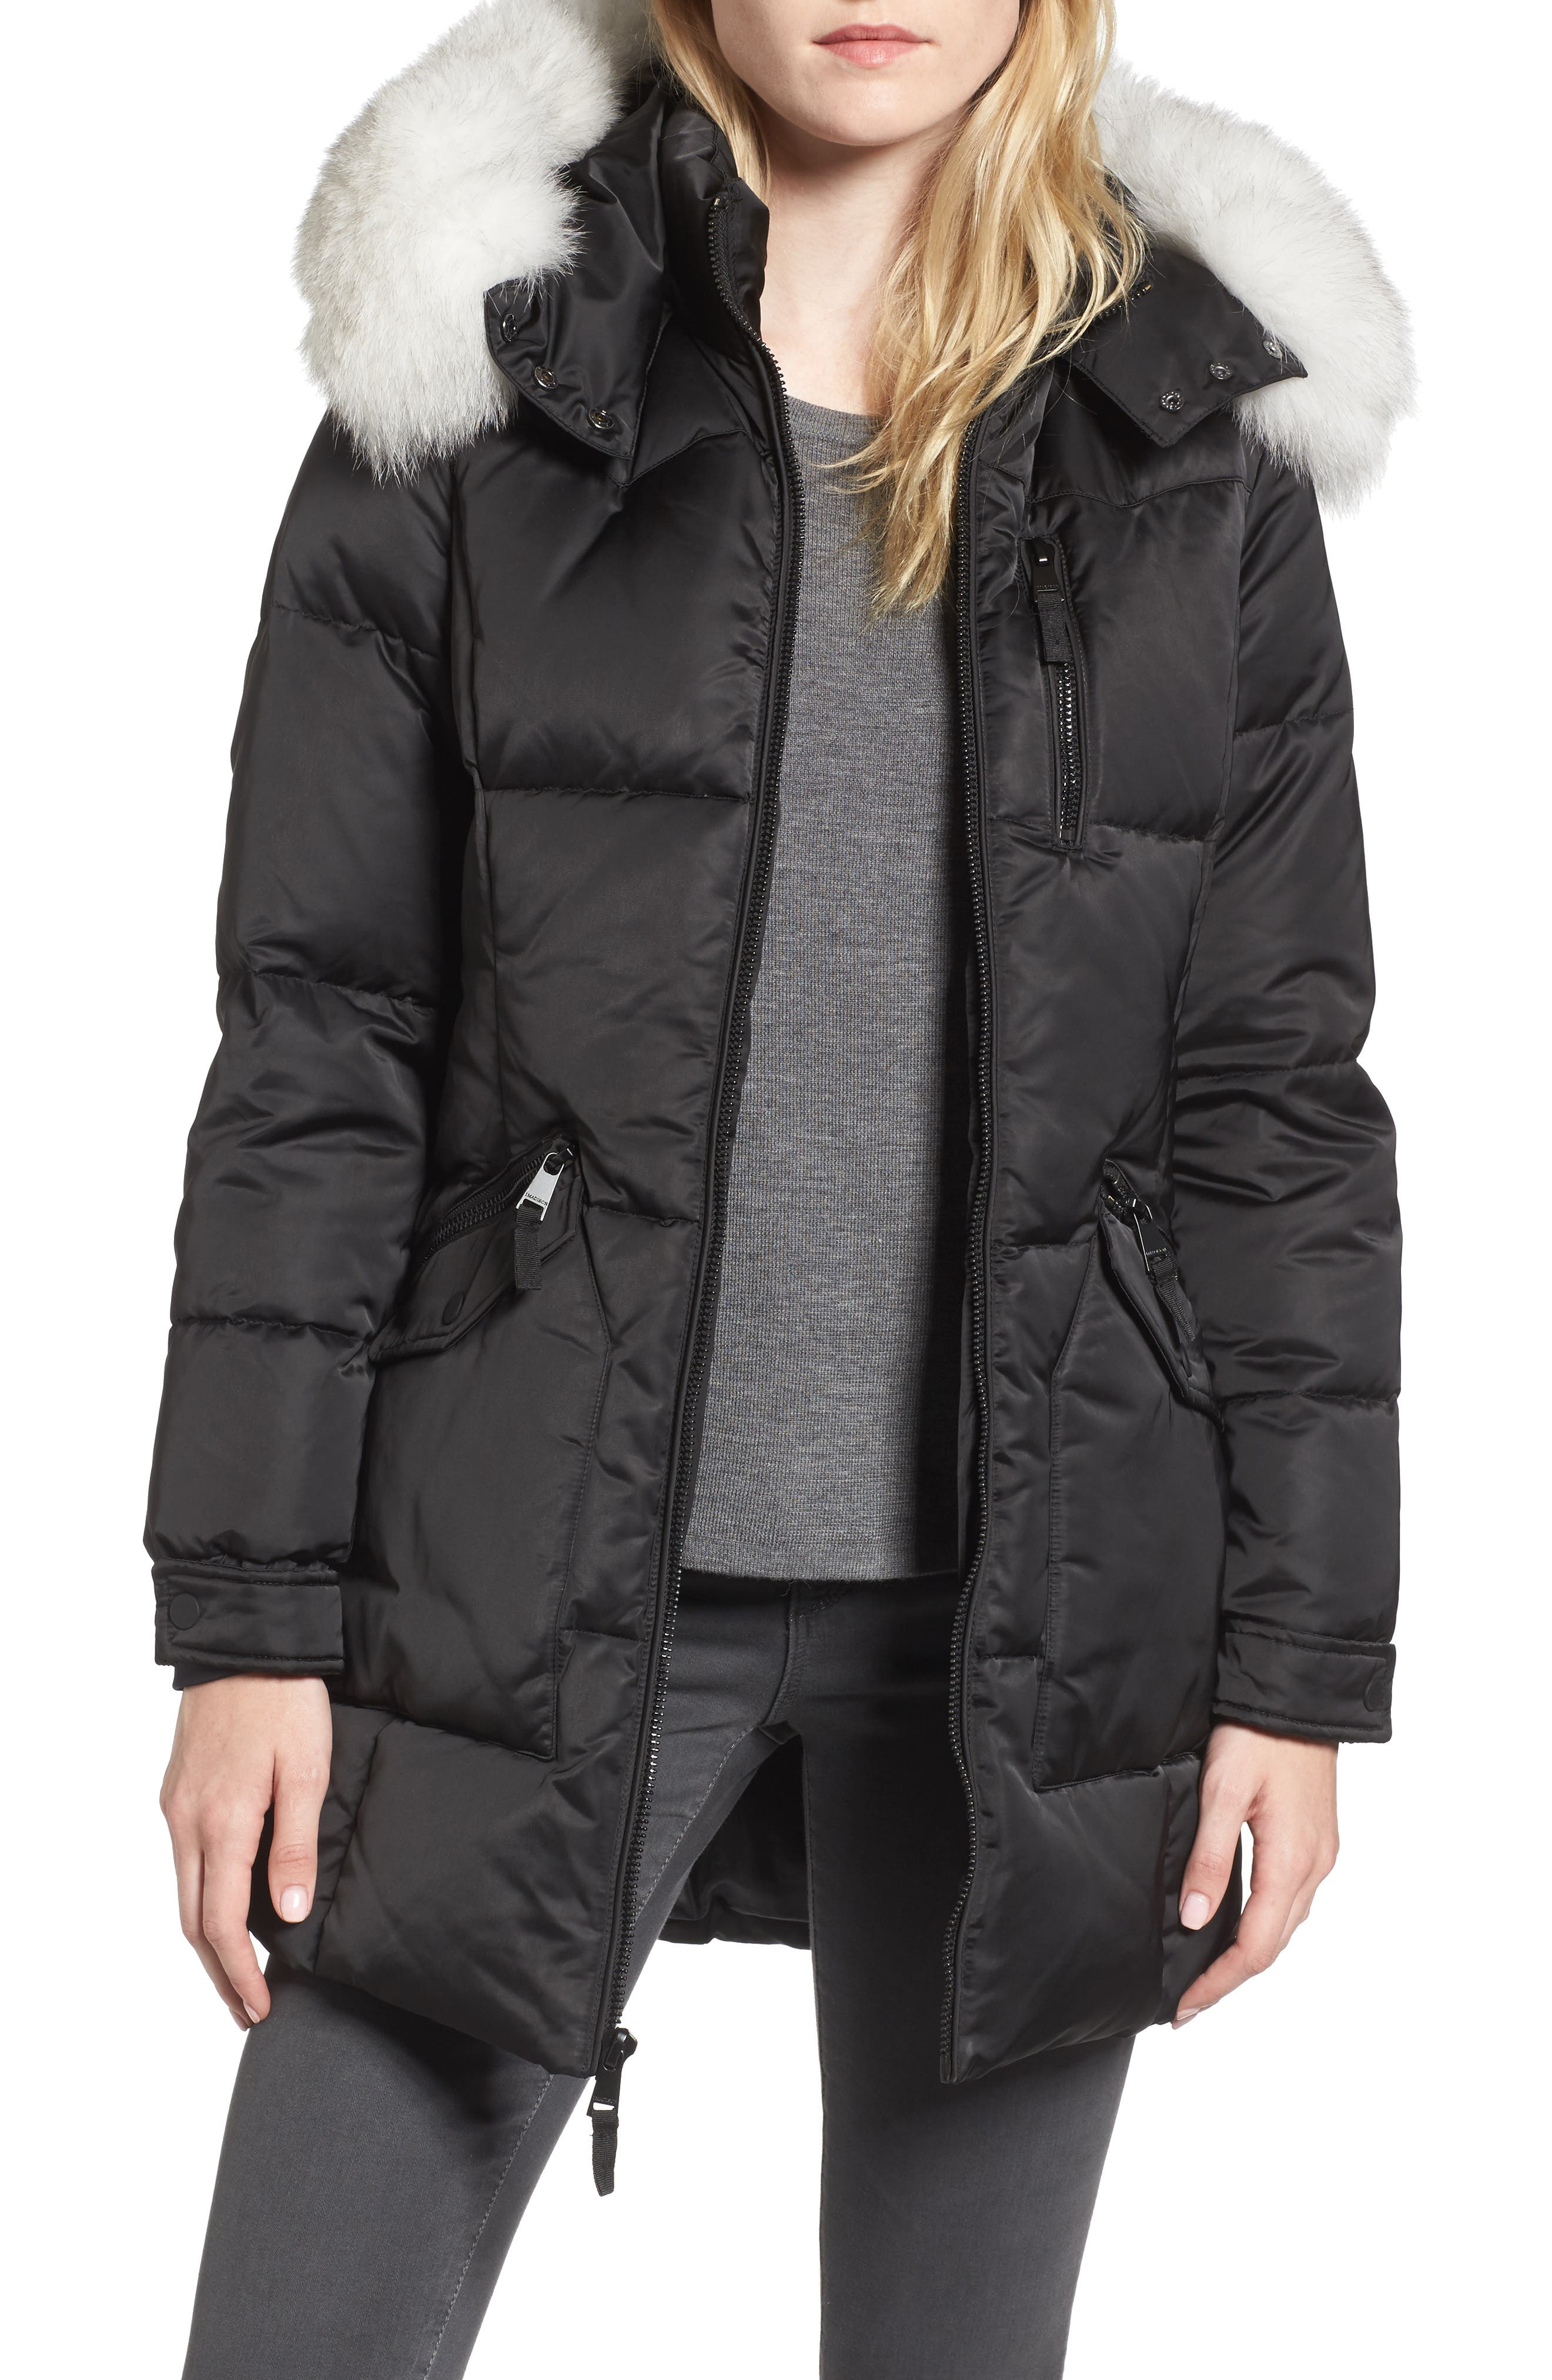 Puffer Jacket with Genuine Fox Fur Trim,                             Main thumbnail 1, color,                             Black